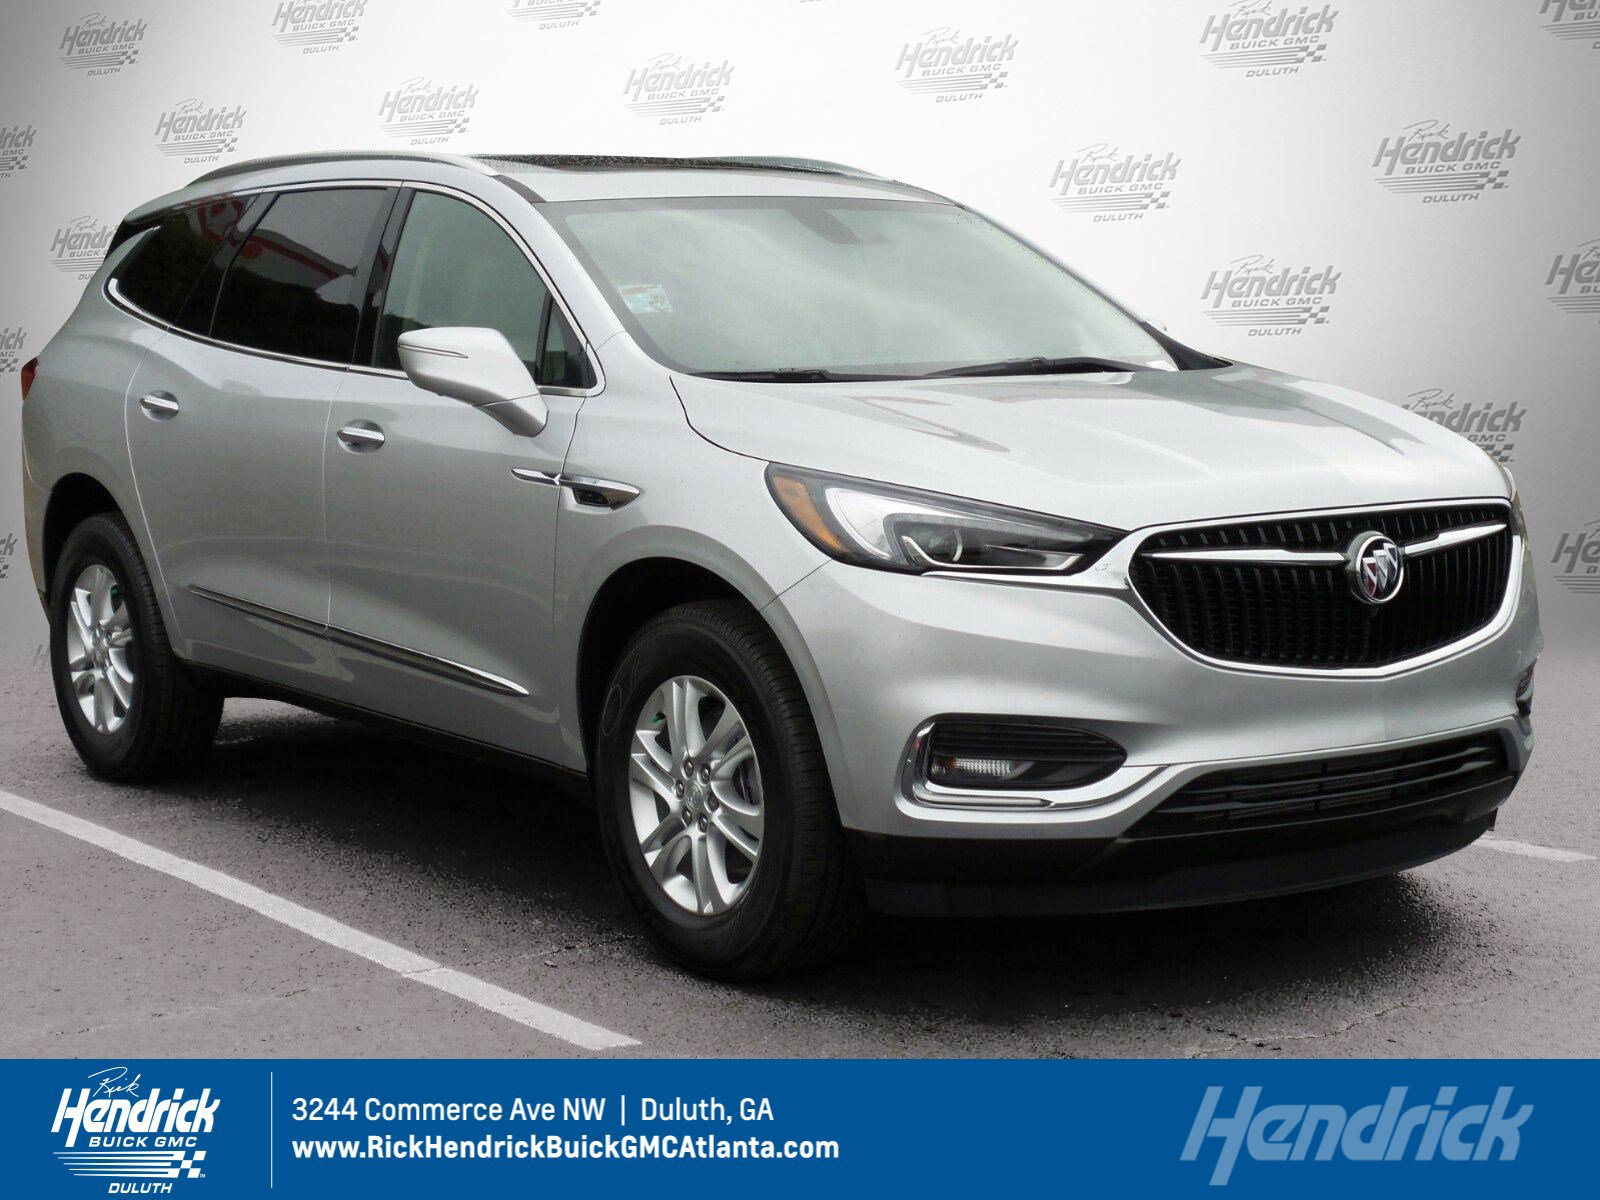 2021 buick enclave price pictures brochure  2021 buick